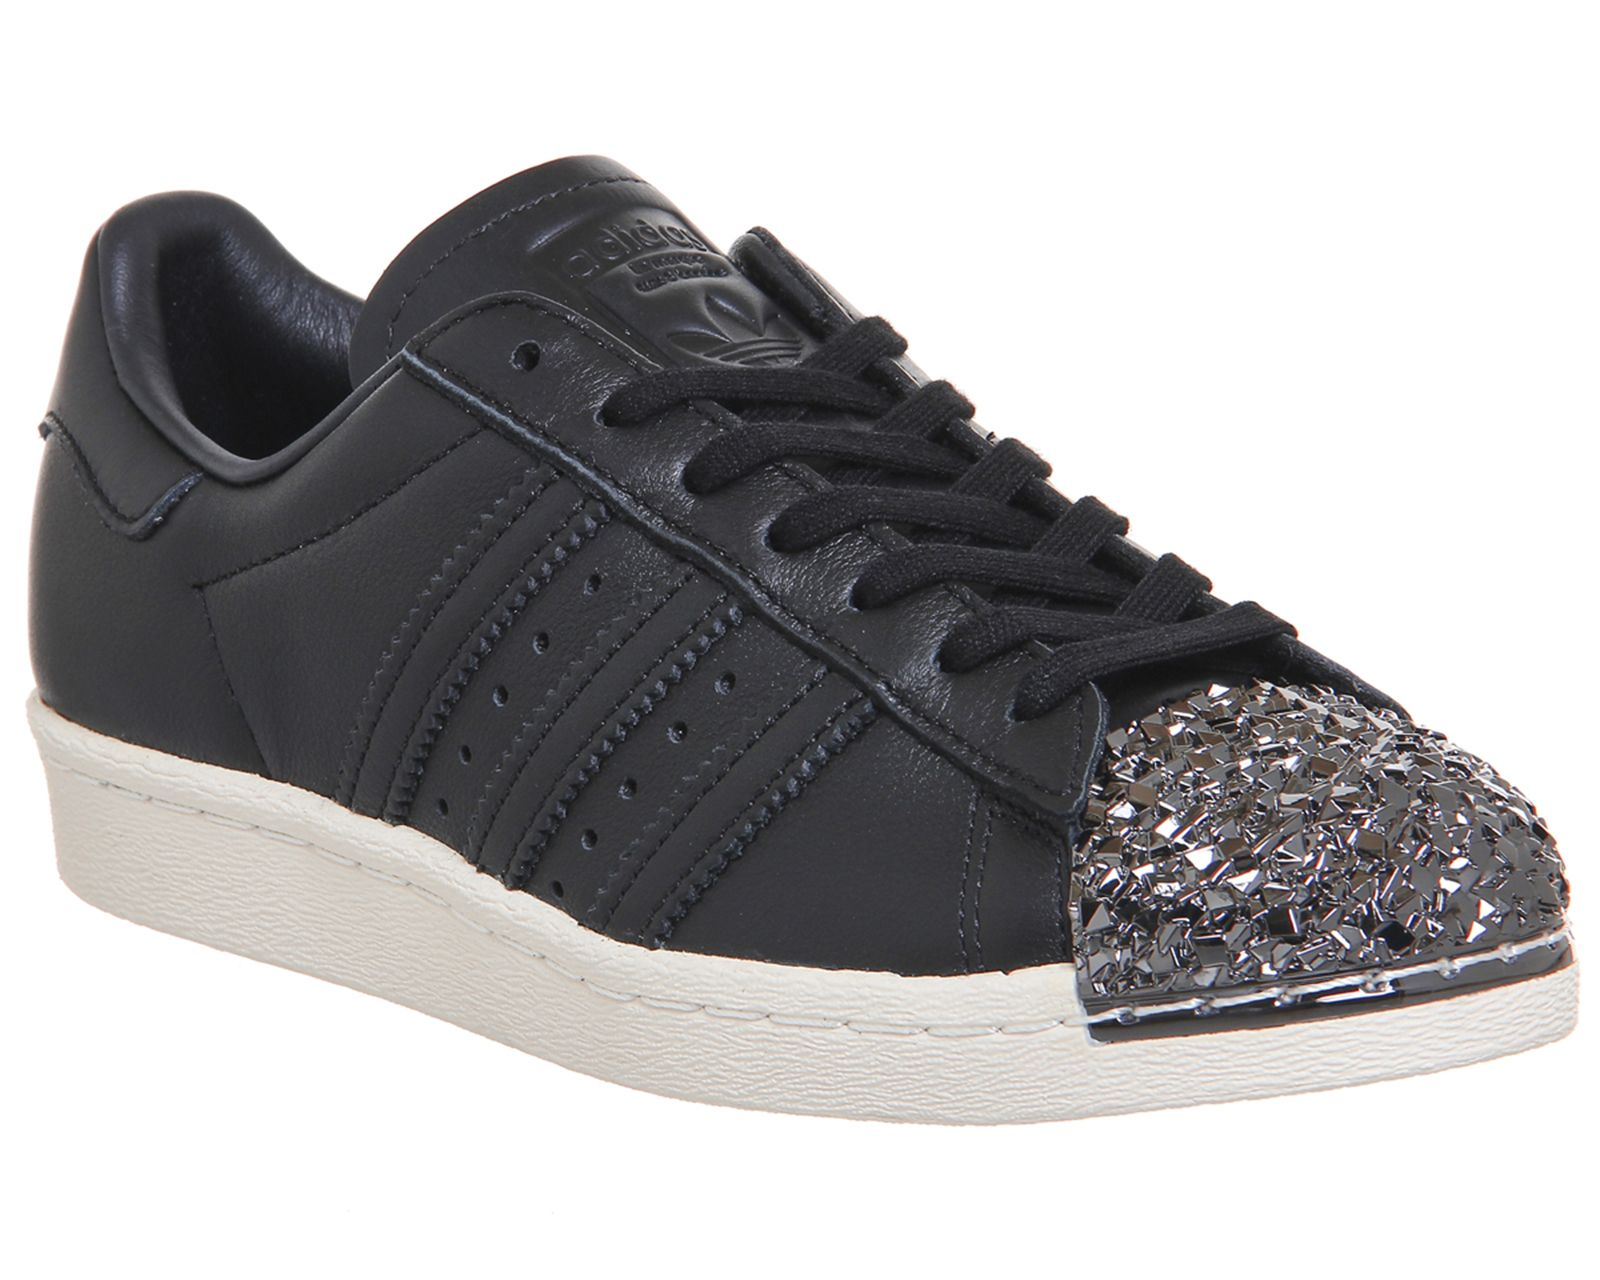 outlet store bd893 46ebc Adidas Superstar 80 s Metal Toe Black Shattered Mirror 3d